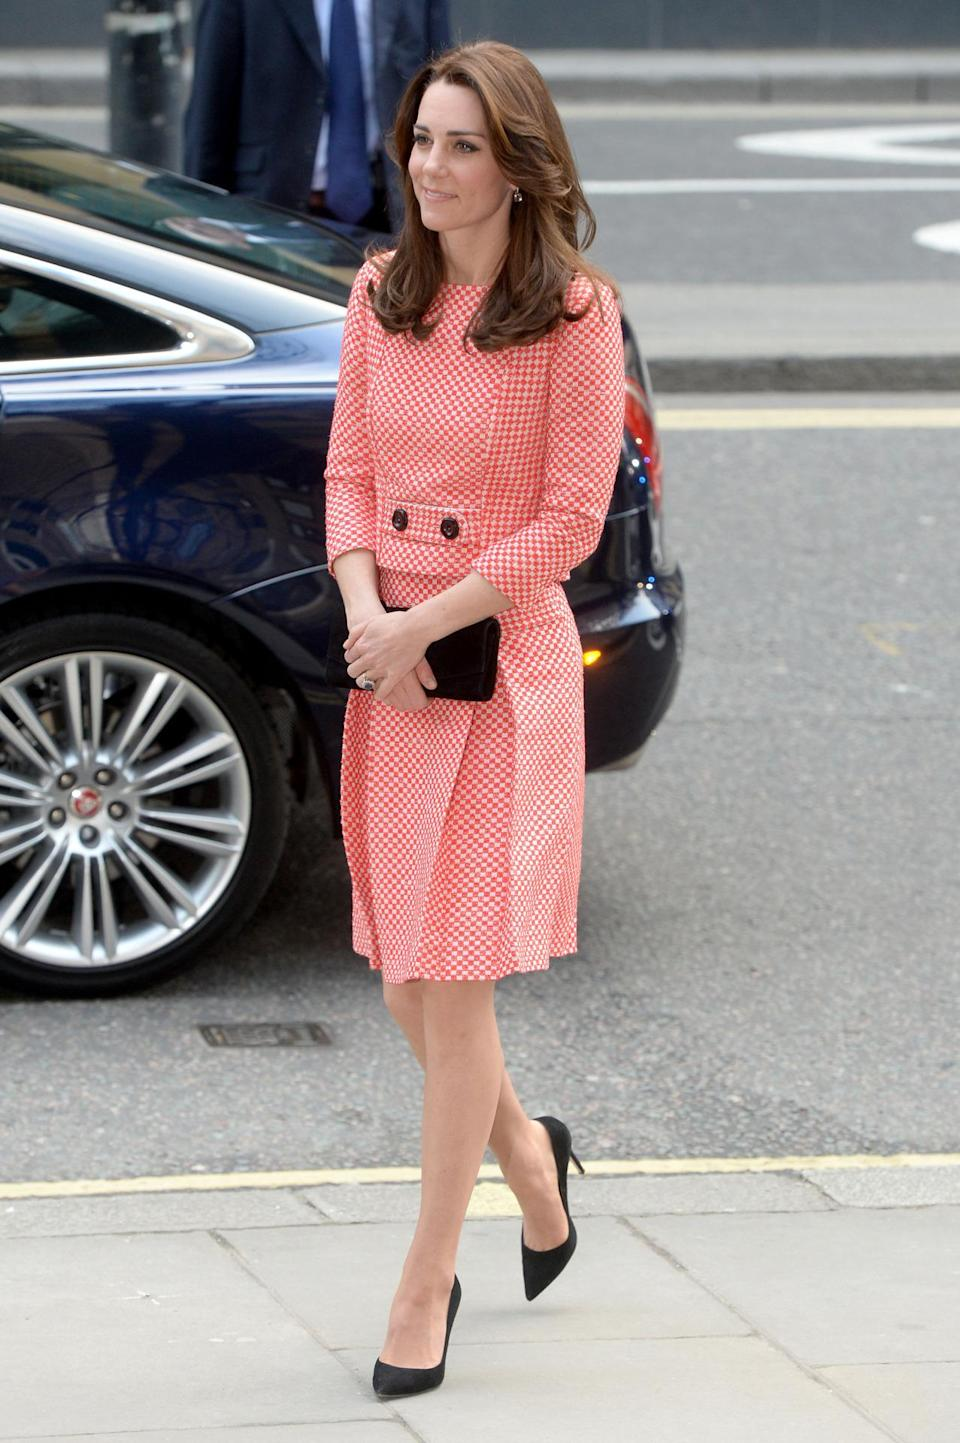 <p>While visiting a youth project in London, Kate donned a red-and-white gingham suit by Eponine London. She paired the outfit with black Gianvito Rossi pumps and a Stuart Weitzman bag. </p><p><i>[Photo: PA]</i></p>